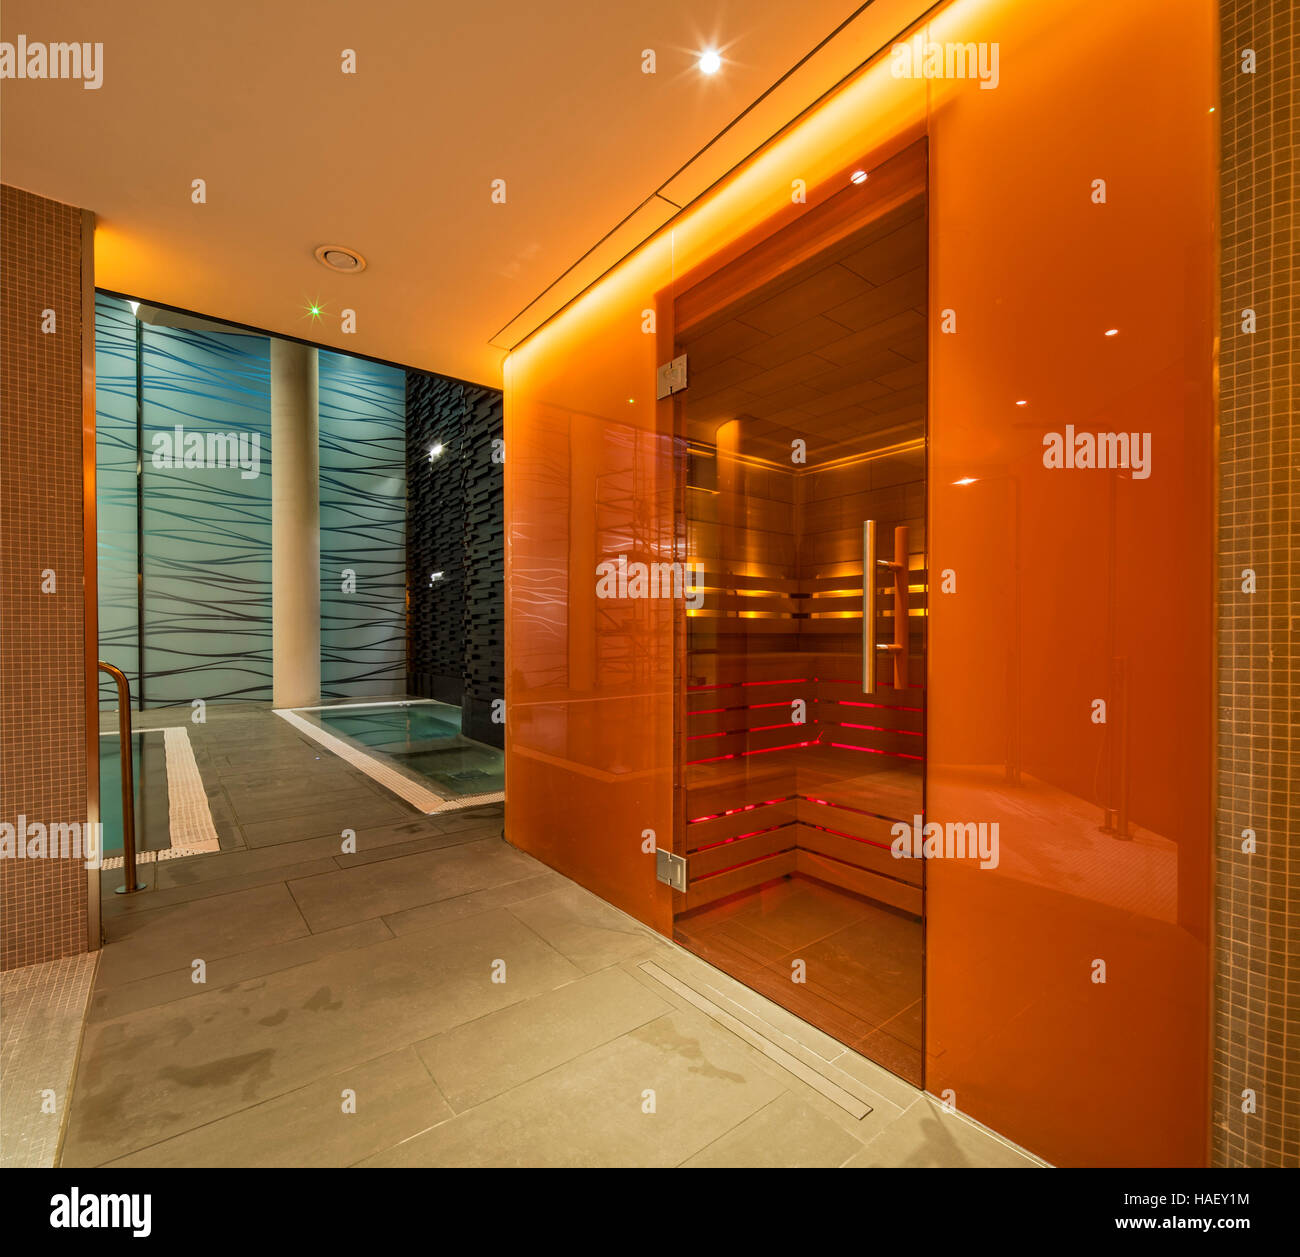 Hotel swimming pool london stock photos hotel swimming - Apartments with swimming pool london ...